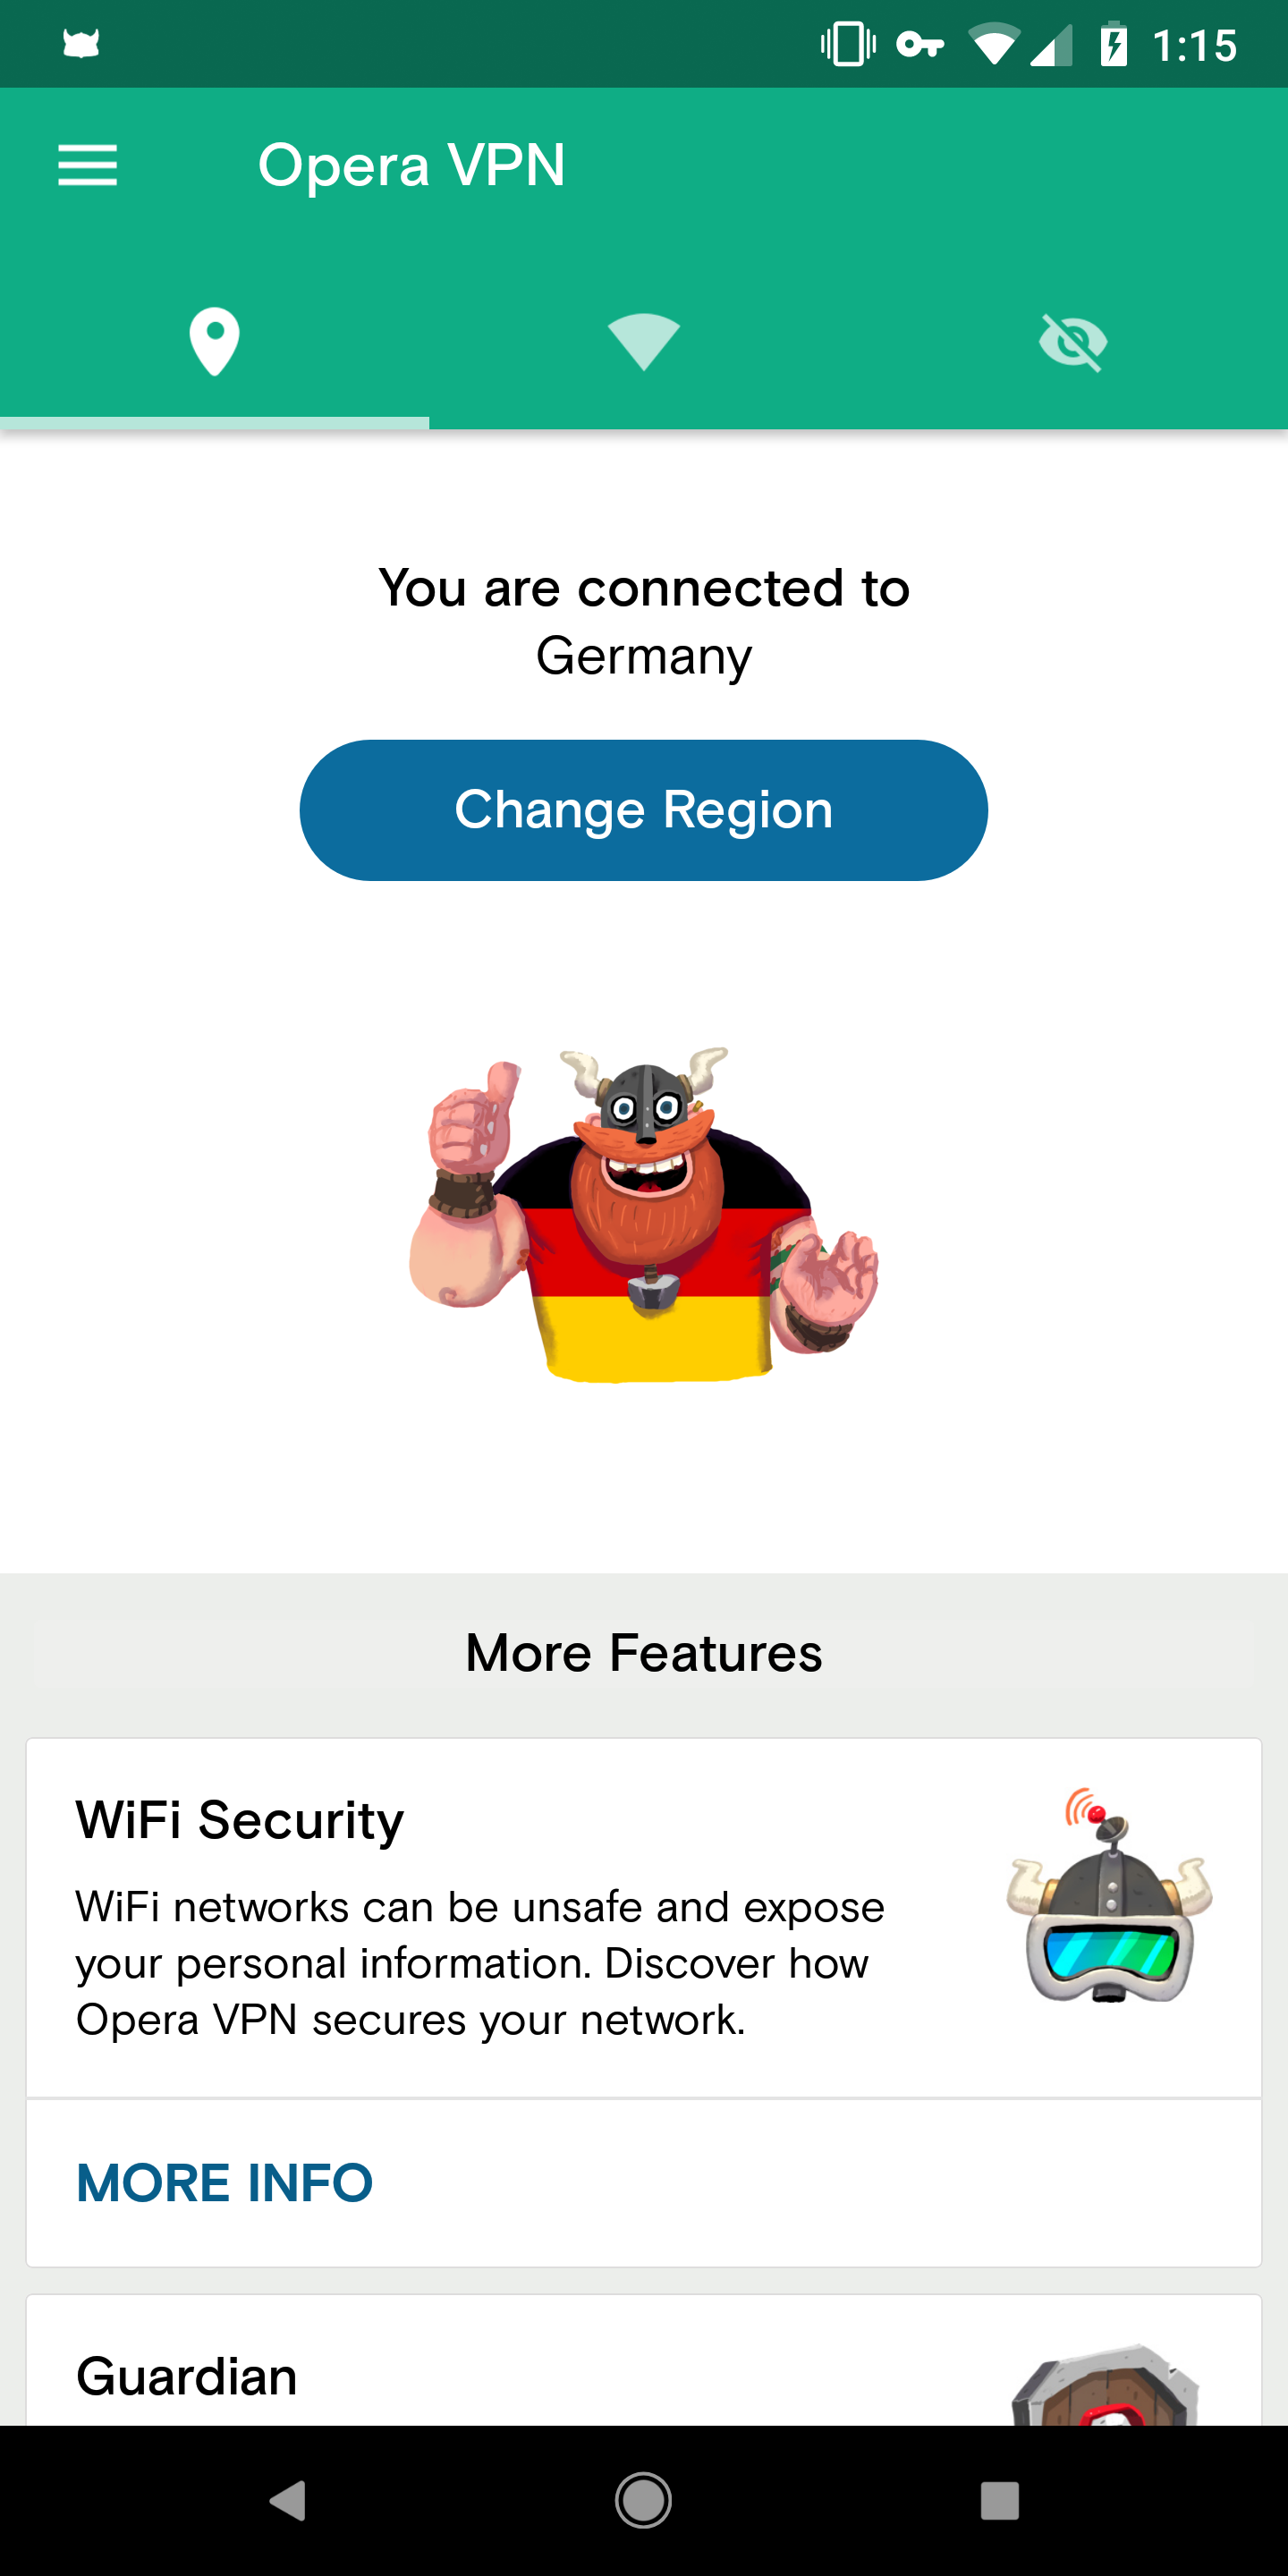 Update: It's back] Opera VPN has disappeared from the Play Store